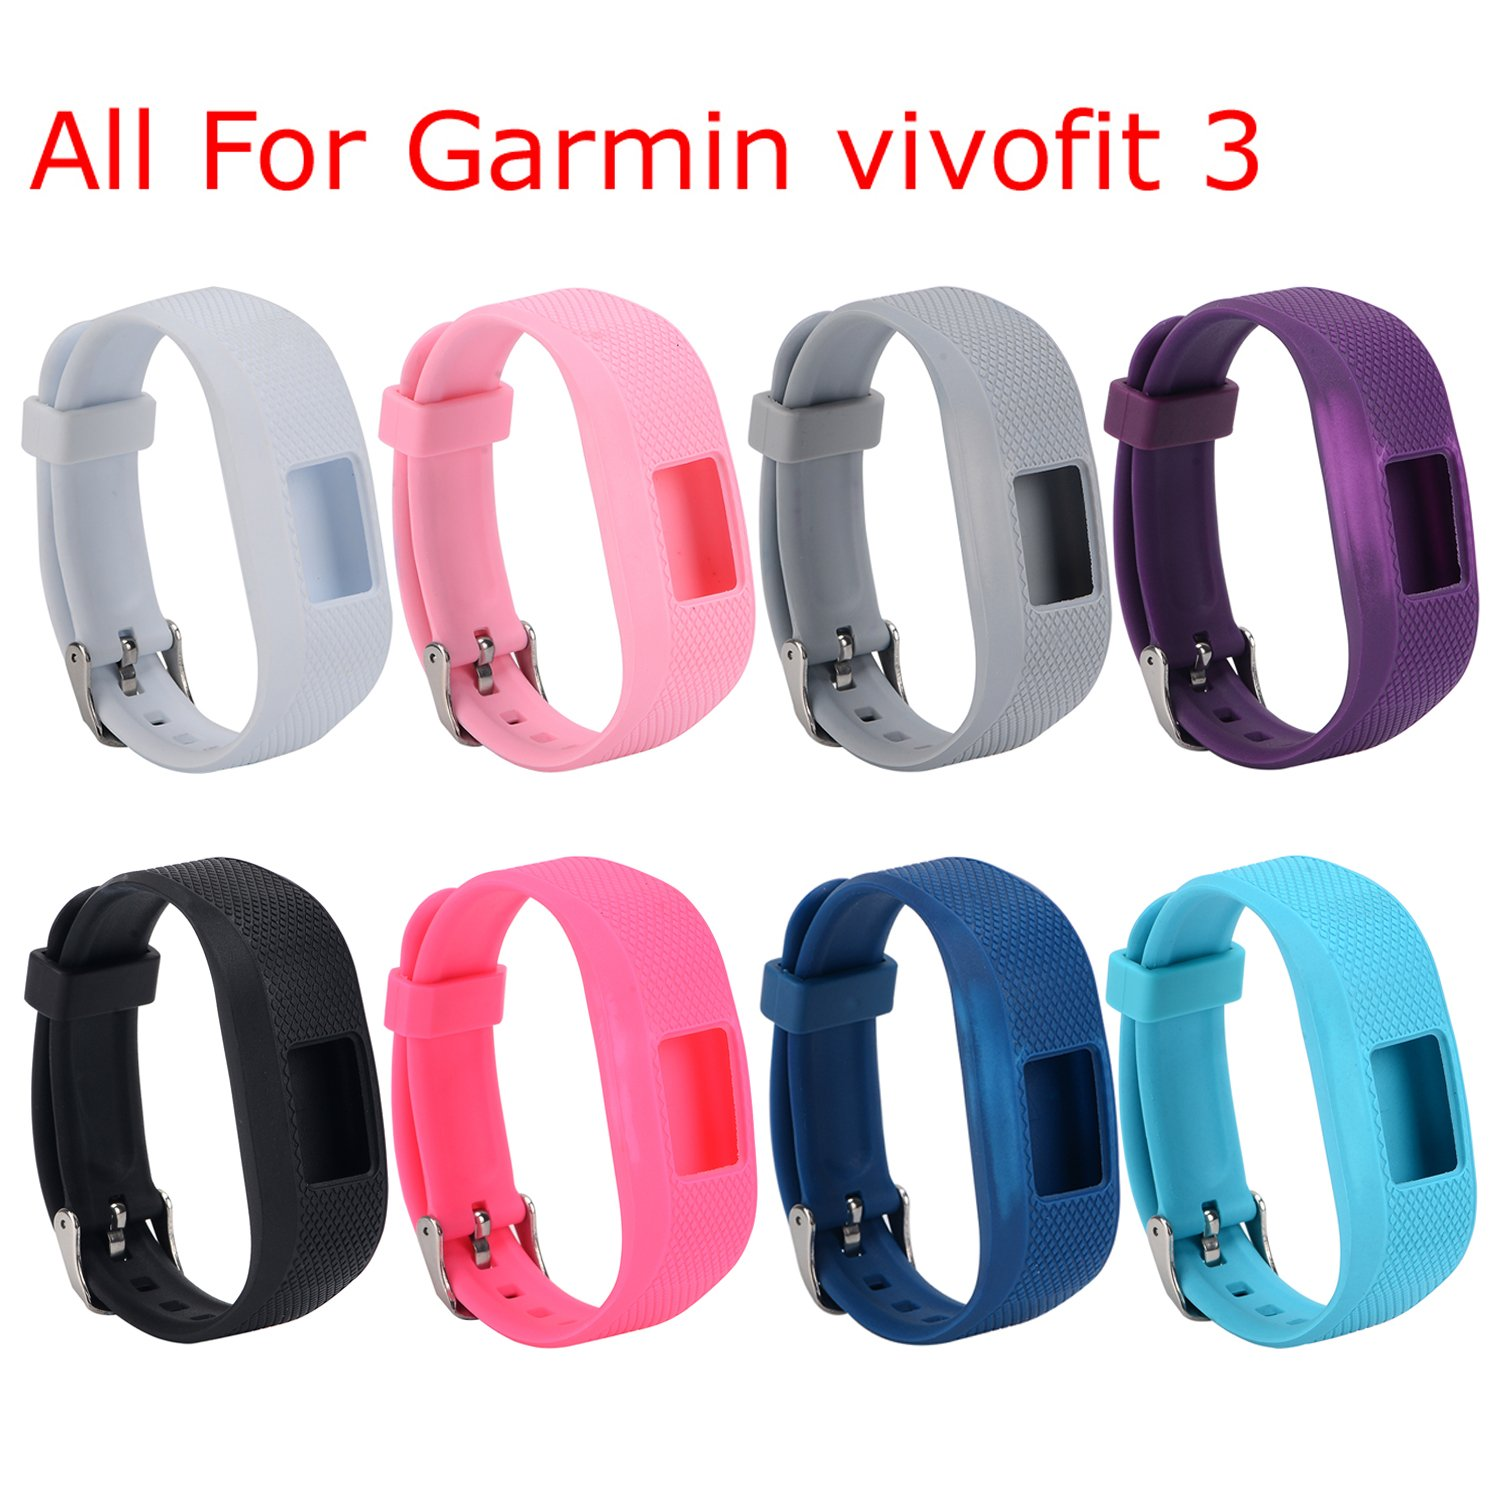 I-SMILE Replacement Wristband with Secure Clasps for Garmin Vivofit 3 Only(No Tracker, Replacement Bands Only) (Set of 8)